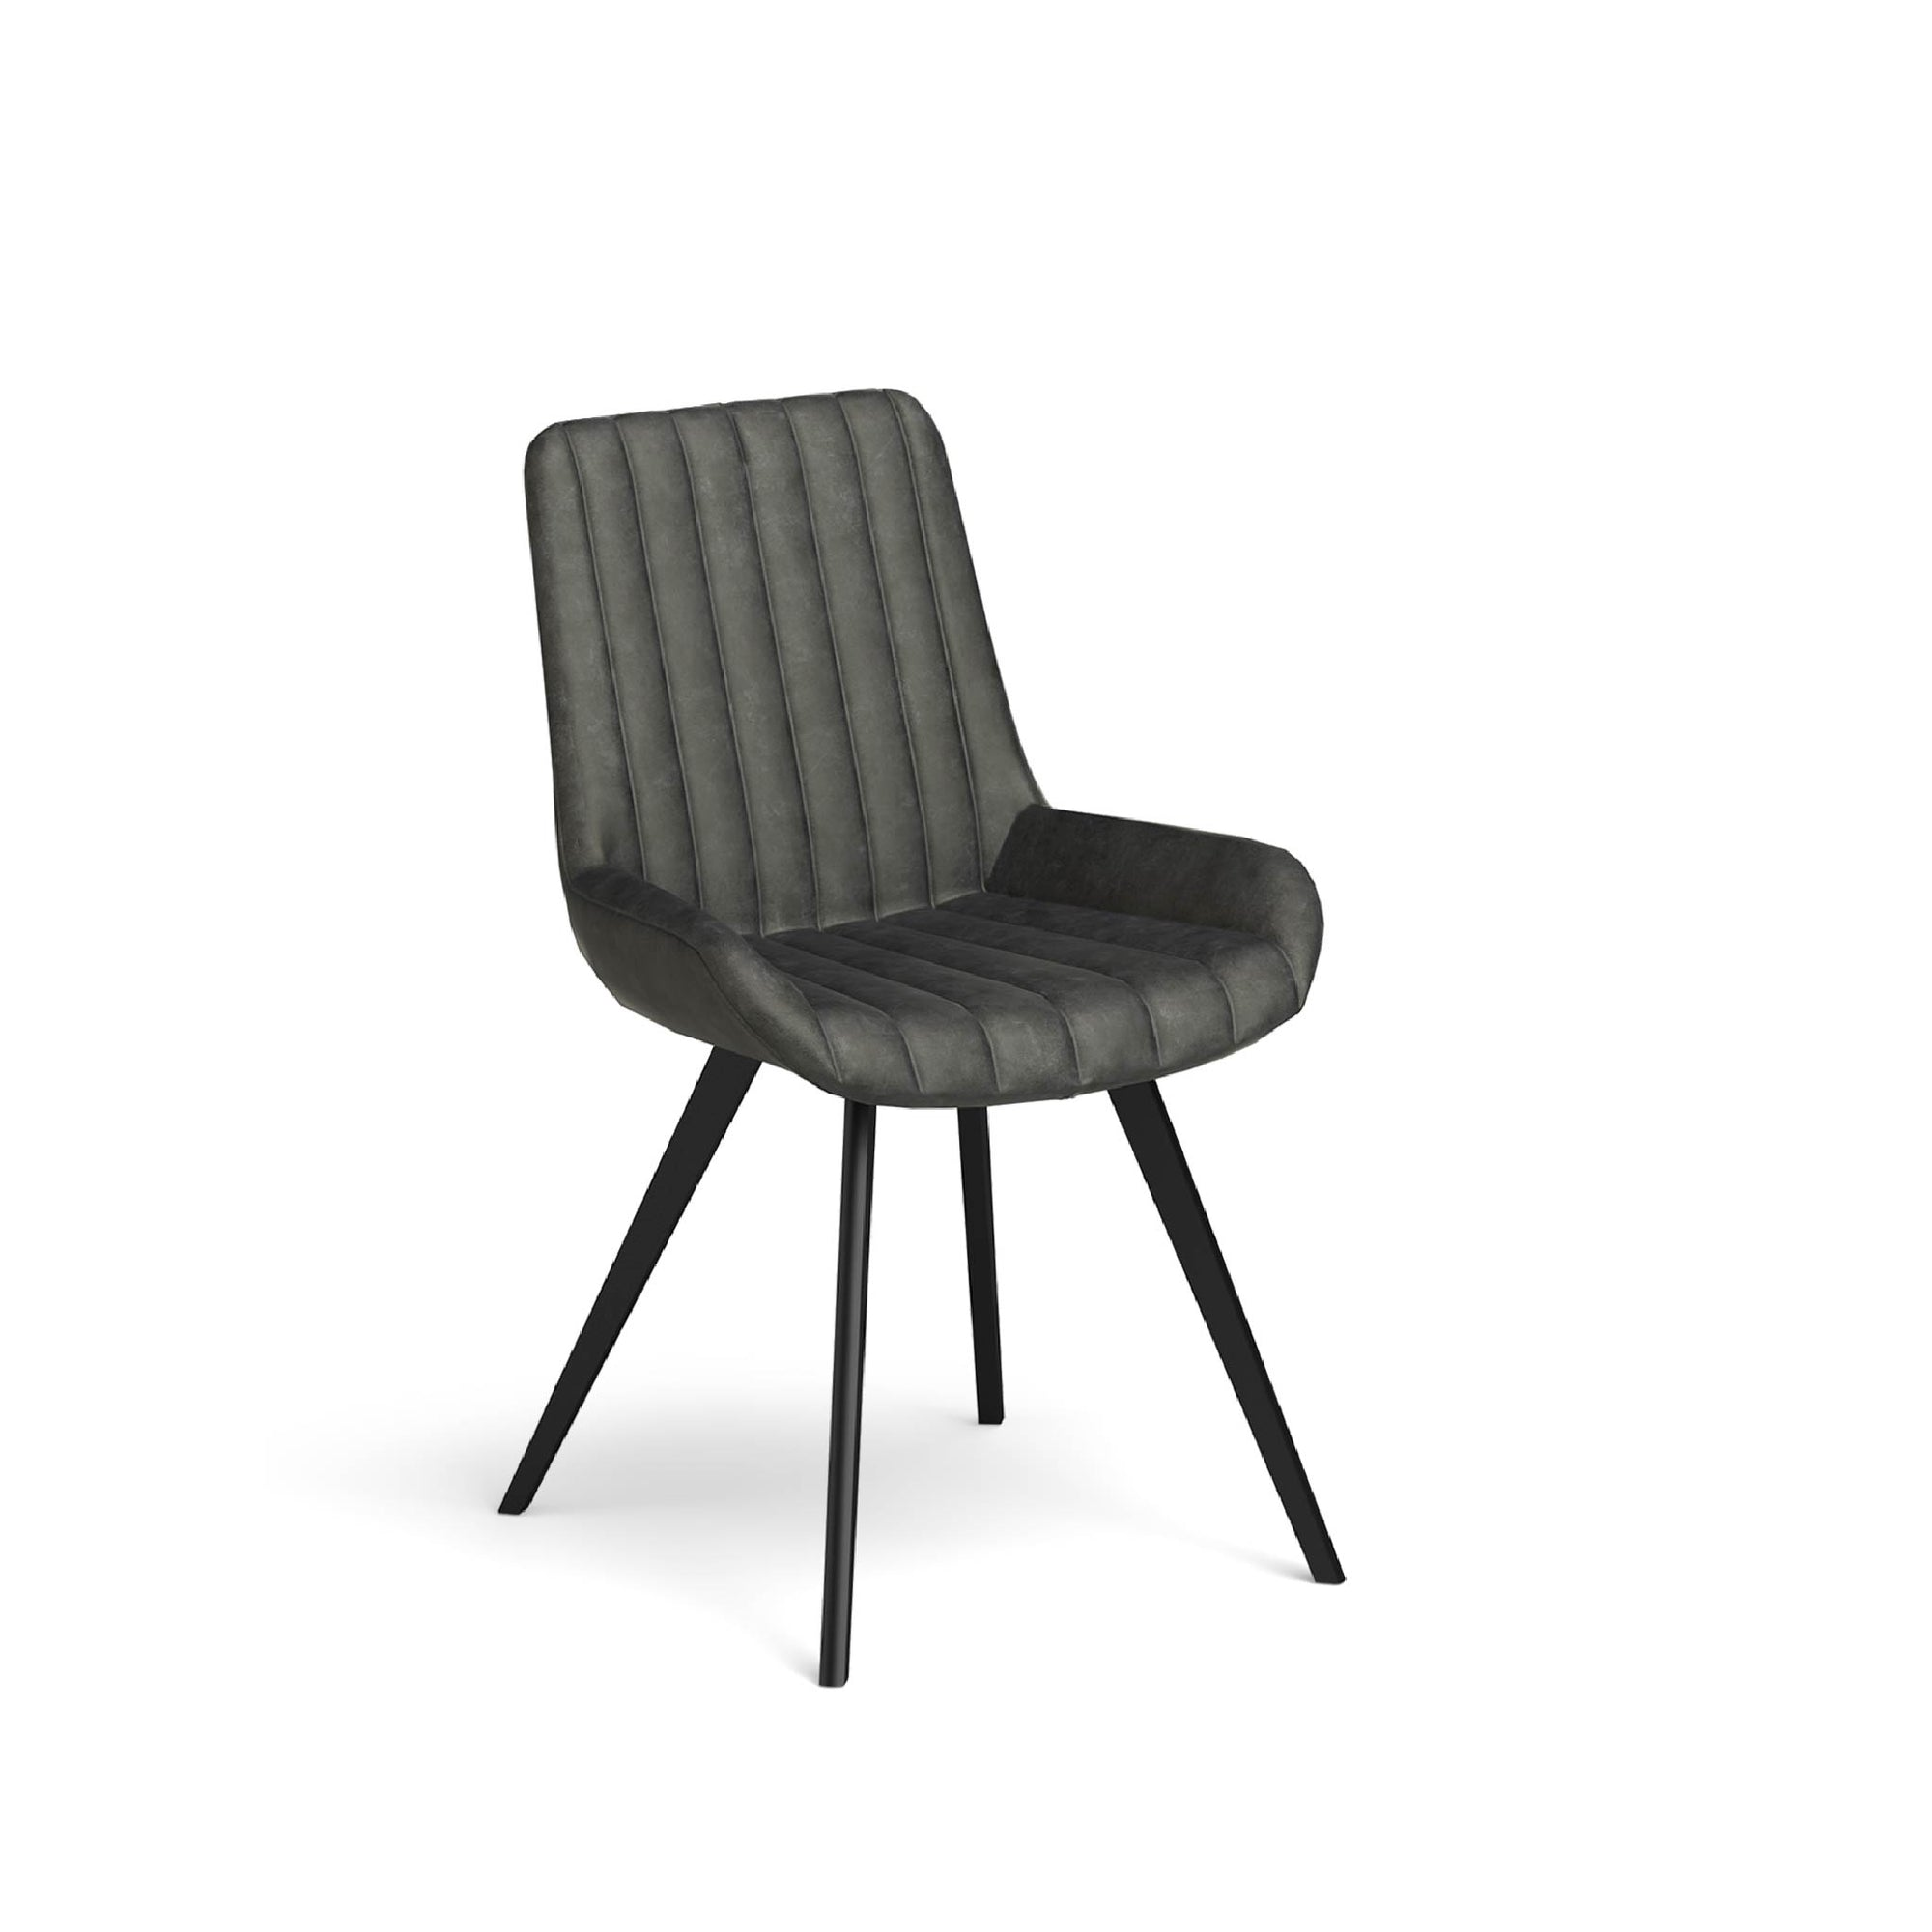 Soho Dining Chair with soft waxed coated seating by Roseland Furniture